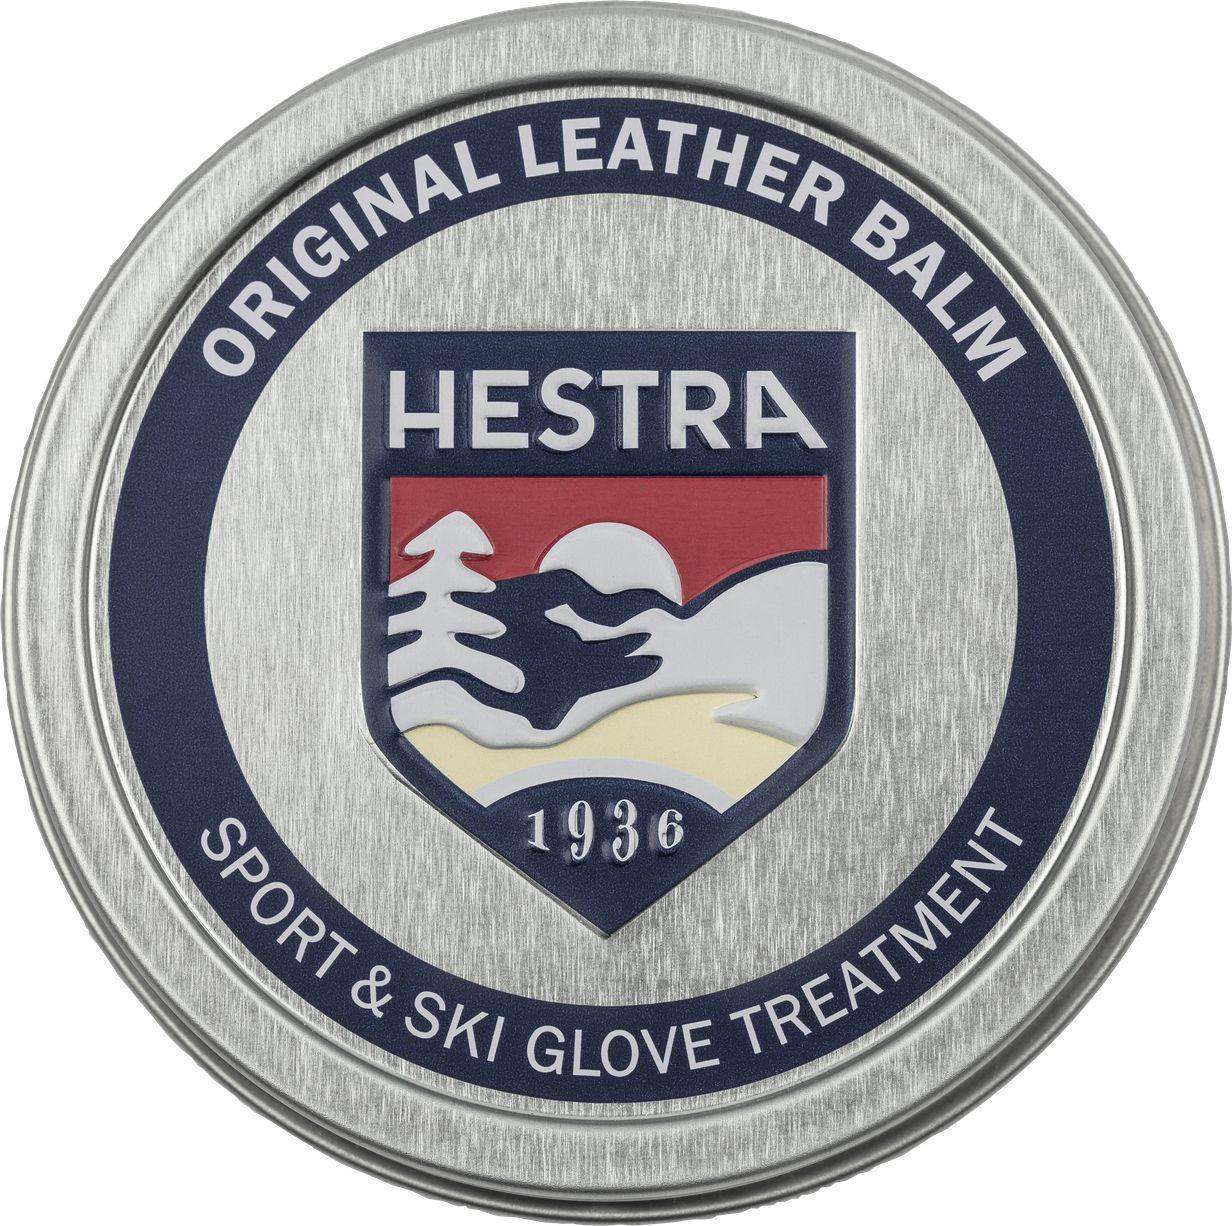 Hestra Leather Balm in one color